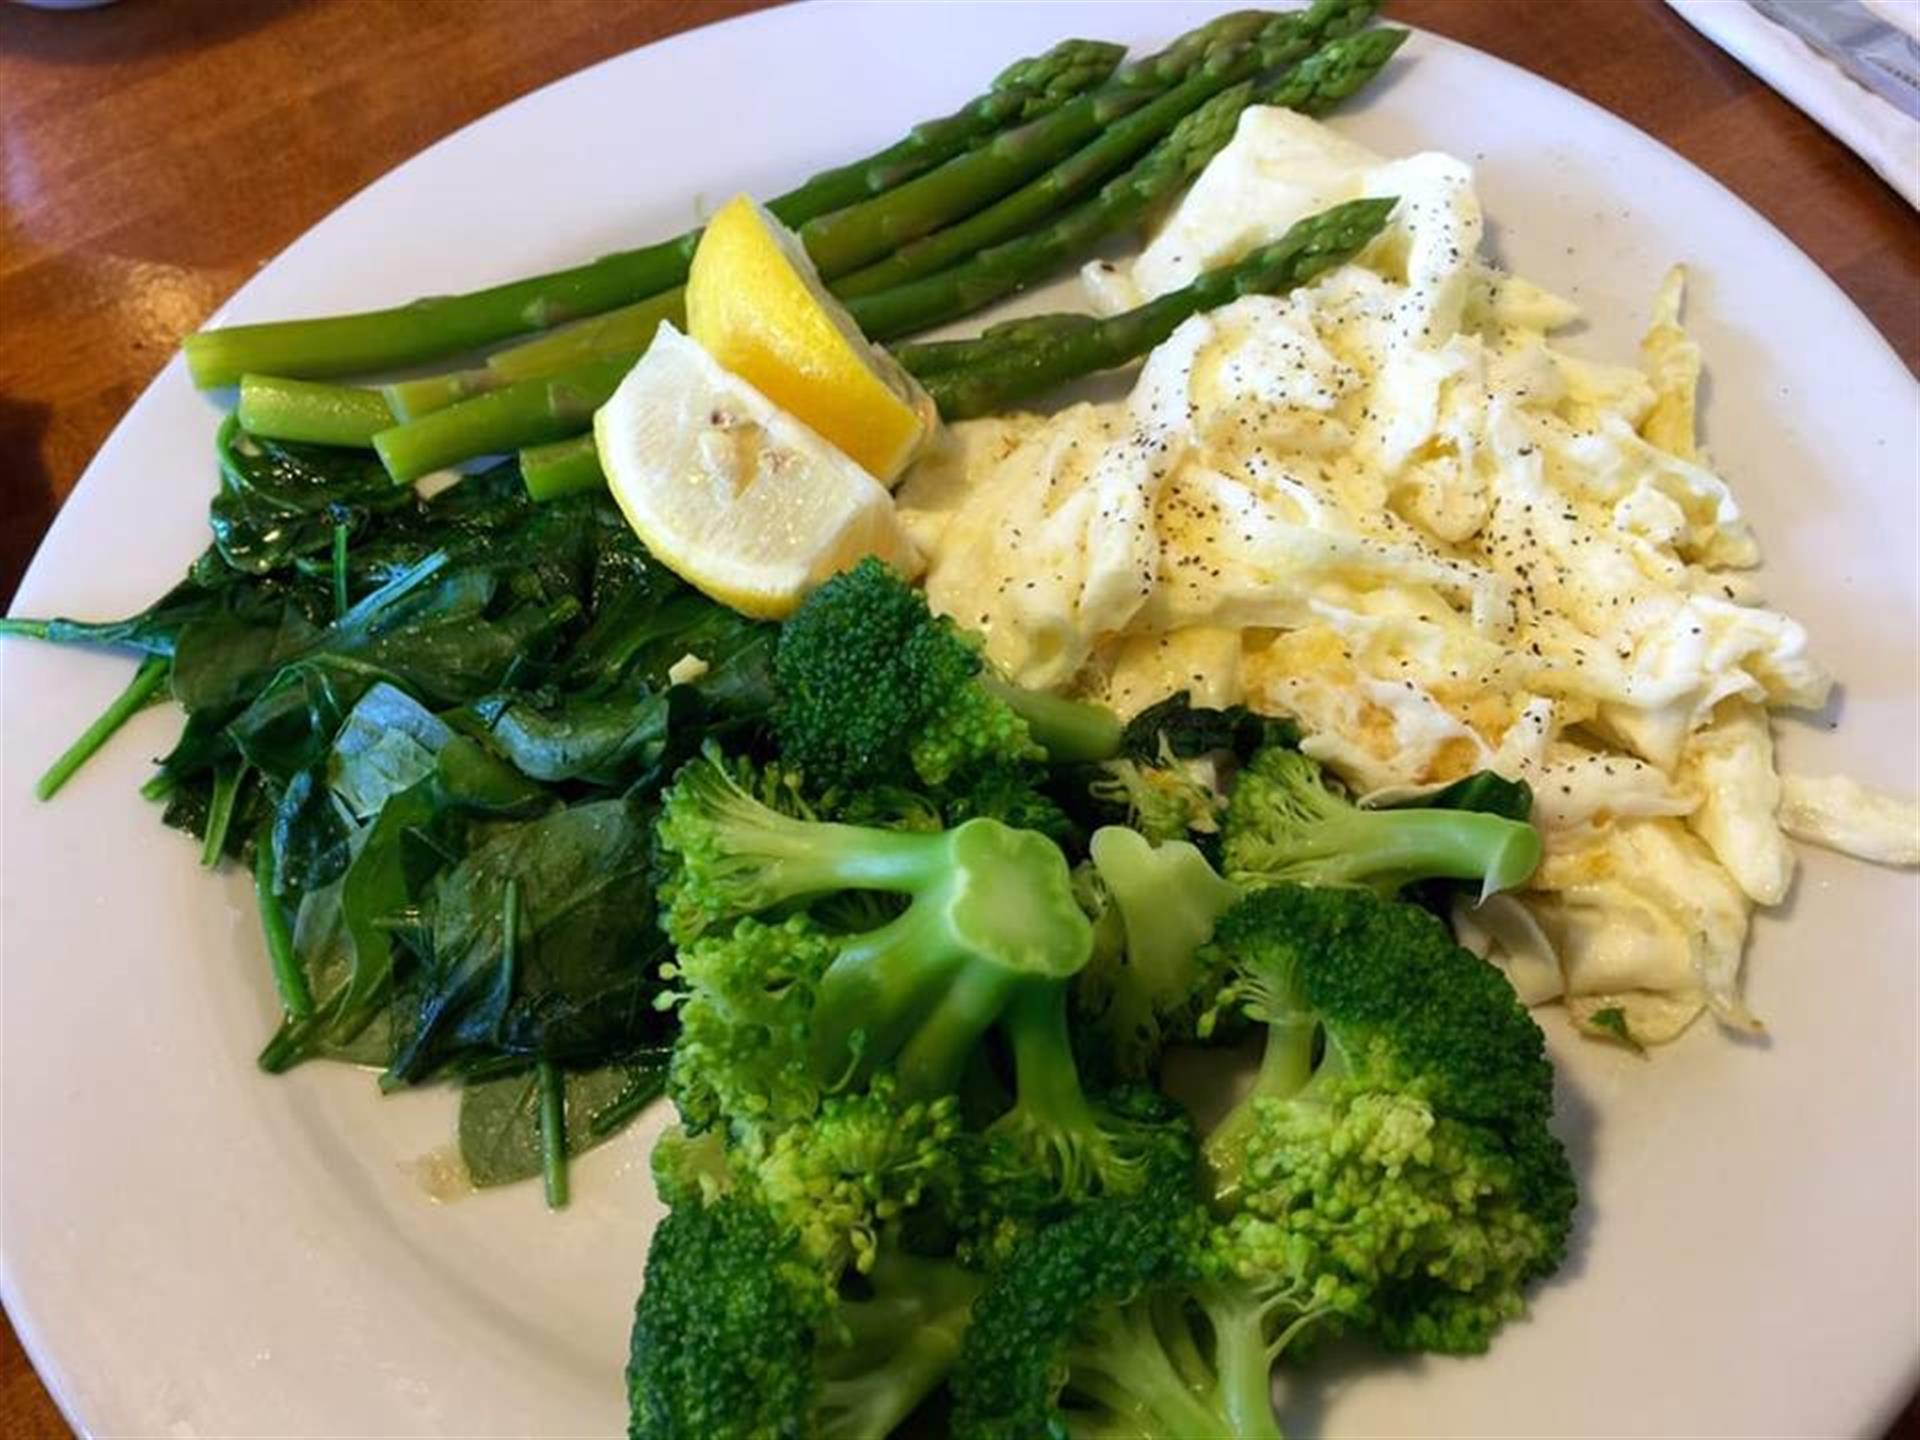 Scrambled egg whites with spinach, broccoli, lemon wedge and asparagus